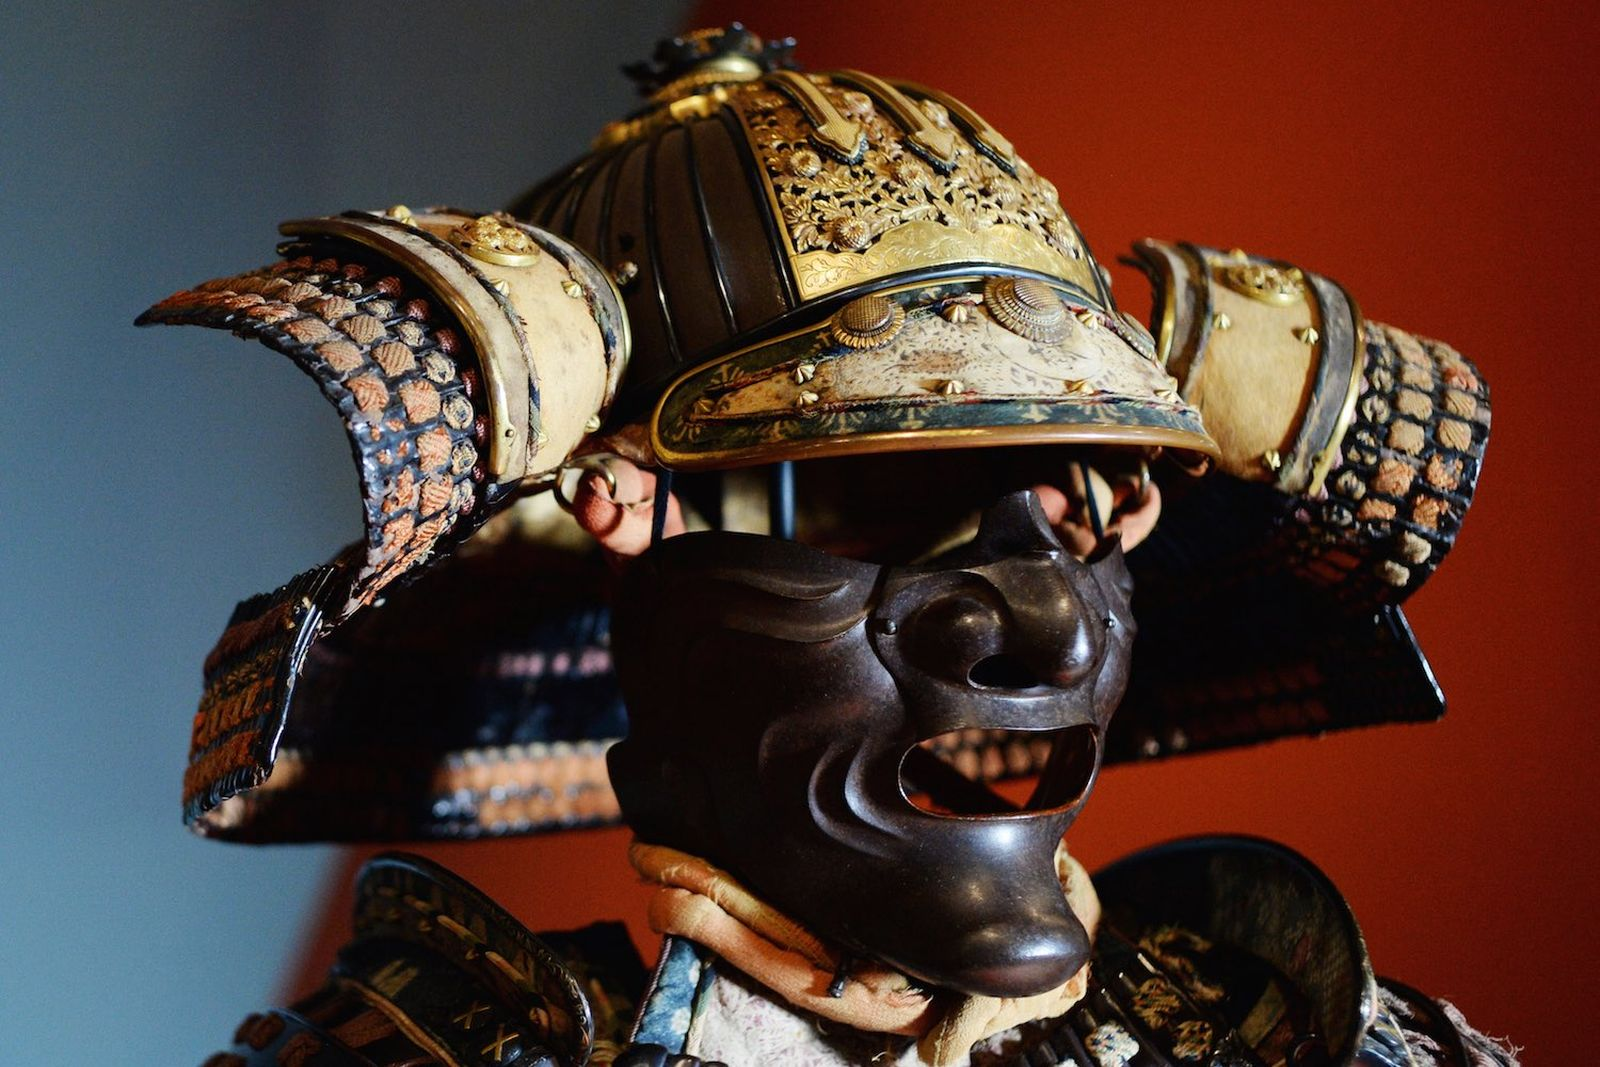 Mgm Is Making A Film About History S First Black Samurai Learn More Here In our new animated historical documentary we will tell the story of the first foreign samurai in japan, the man from africa, they called yasuke. black samurai